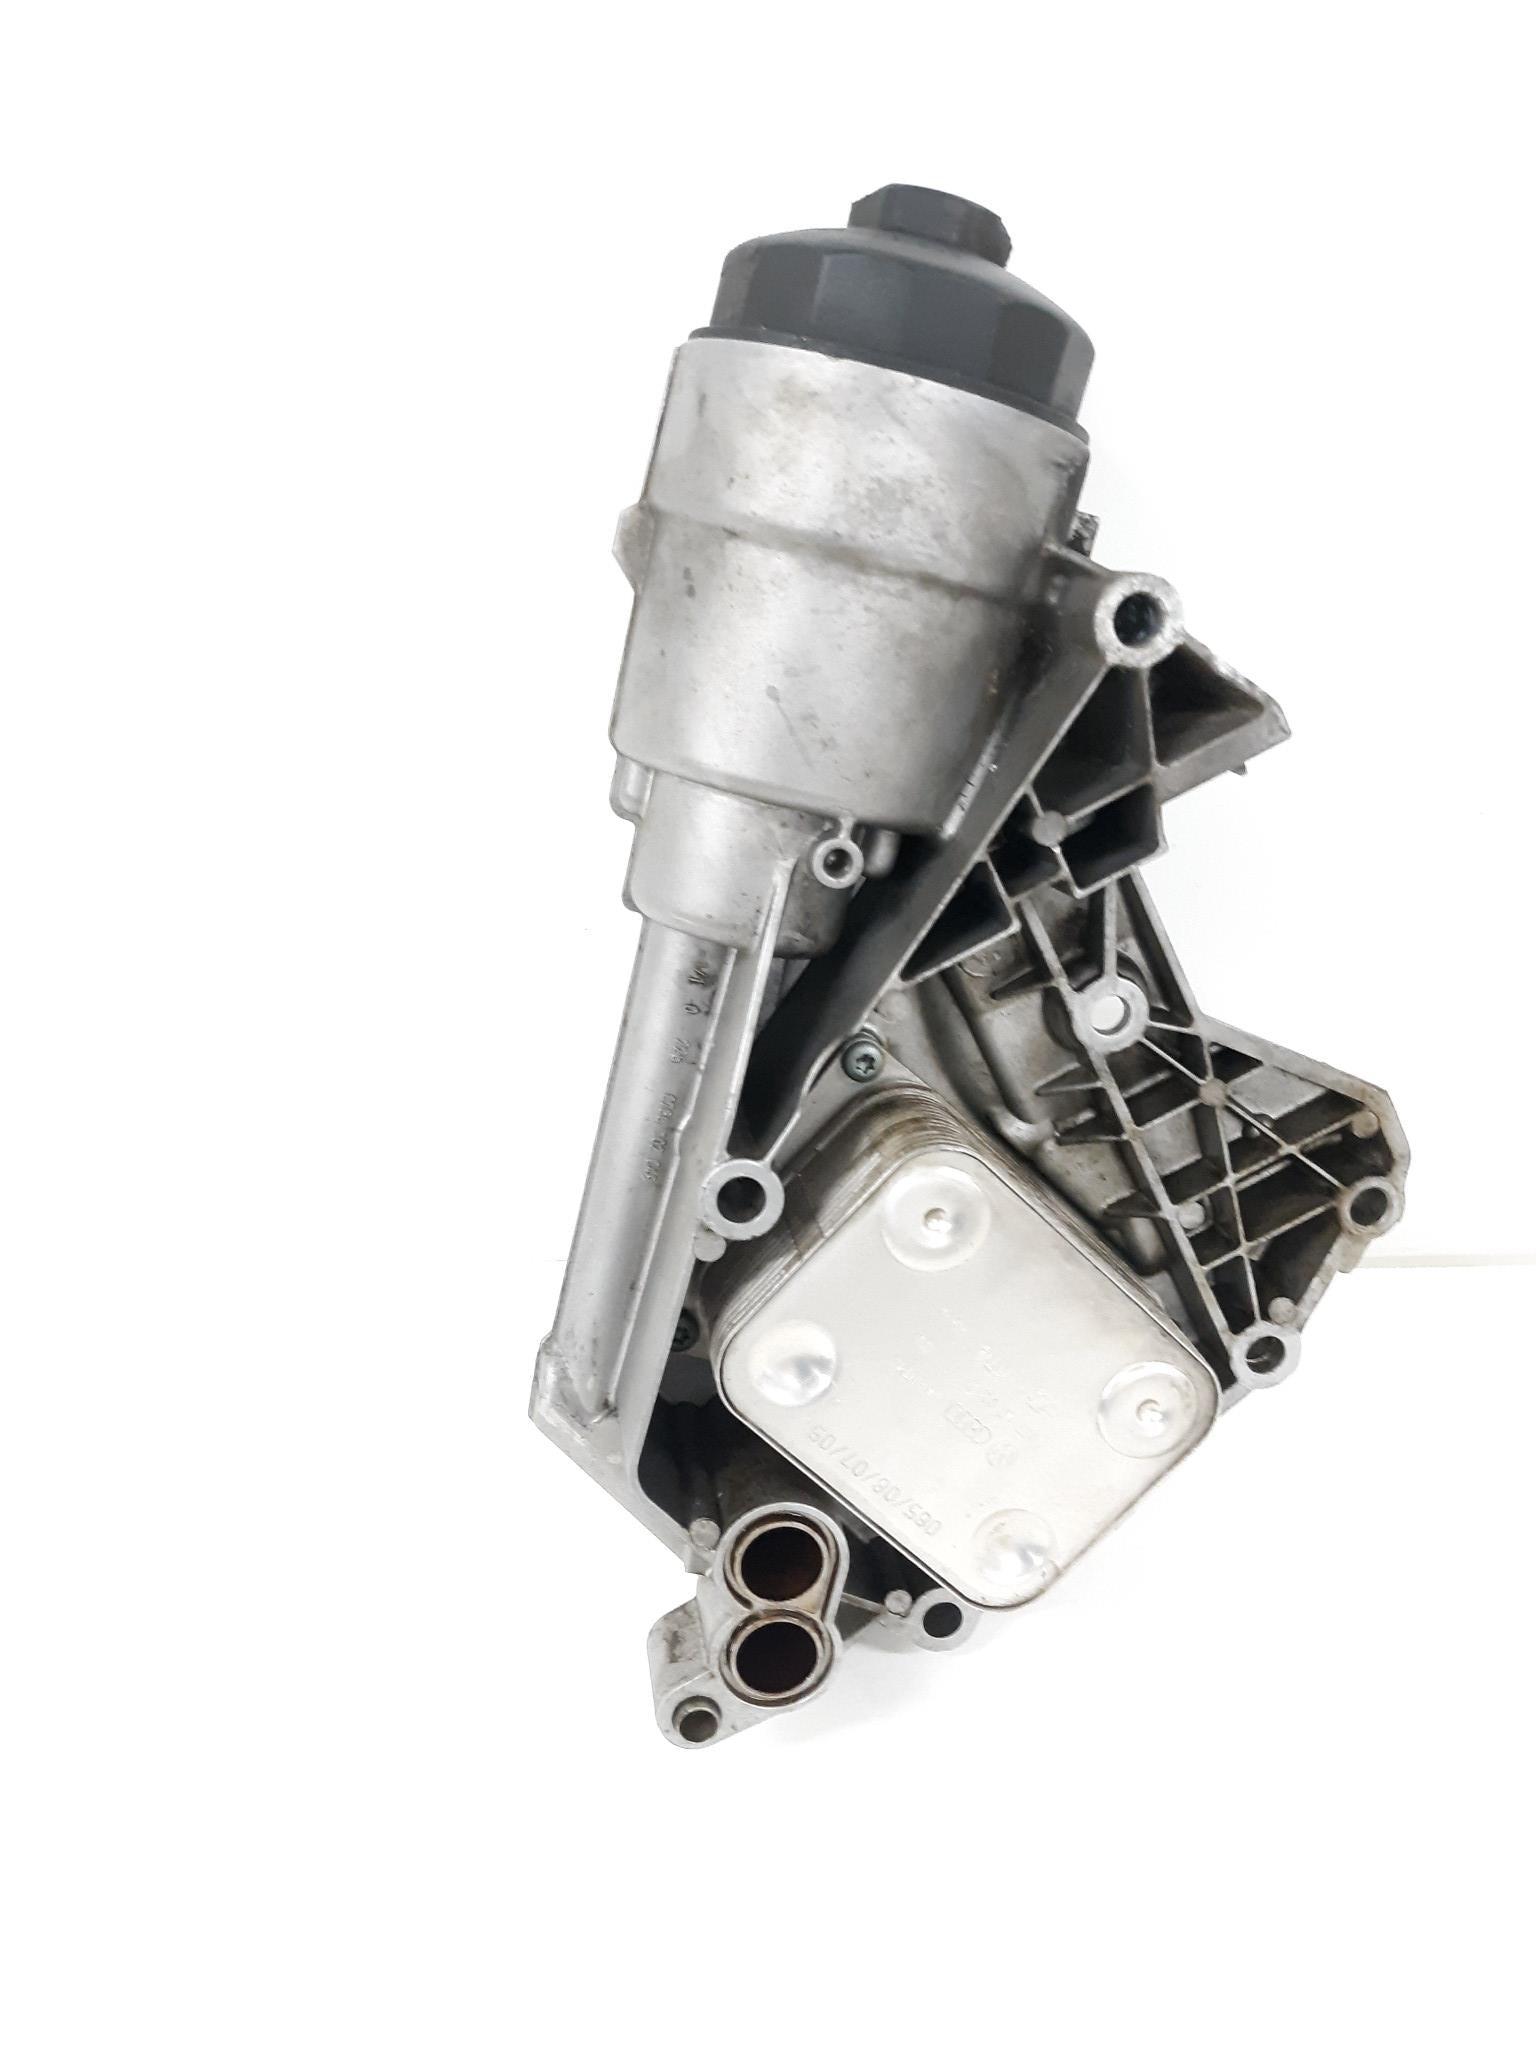 2004 2005 2006 Volkswagen Touareg Oil Filter Housing and Cooler OEM - Click Receive Auto Parts